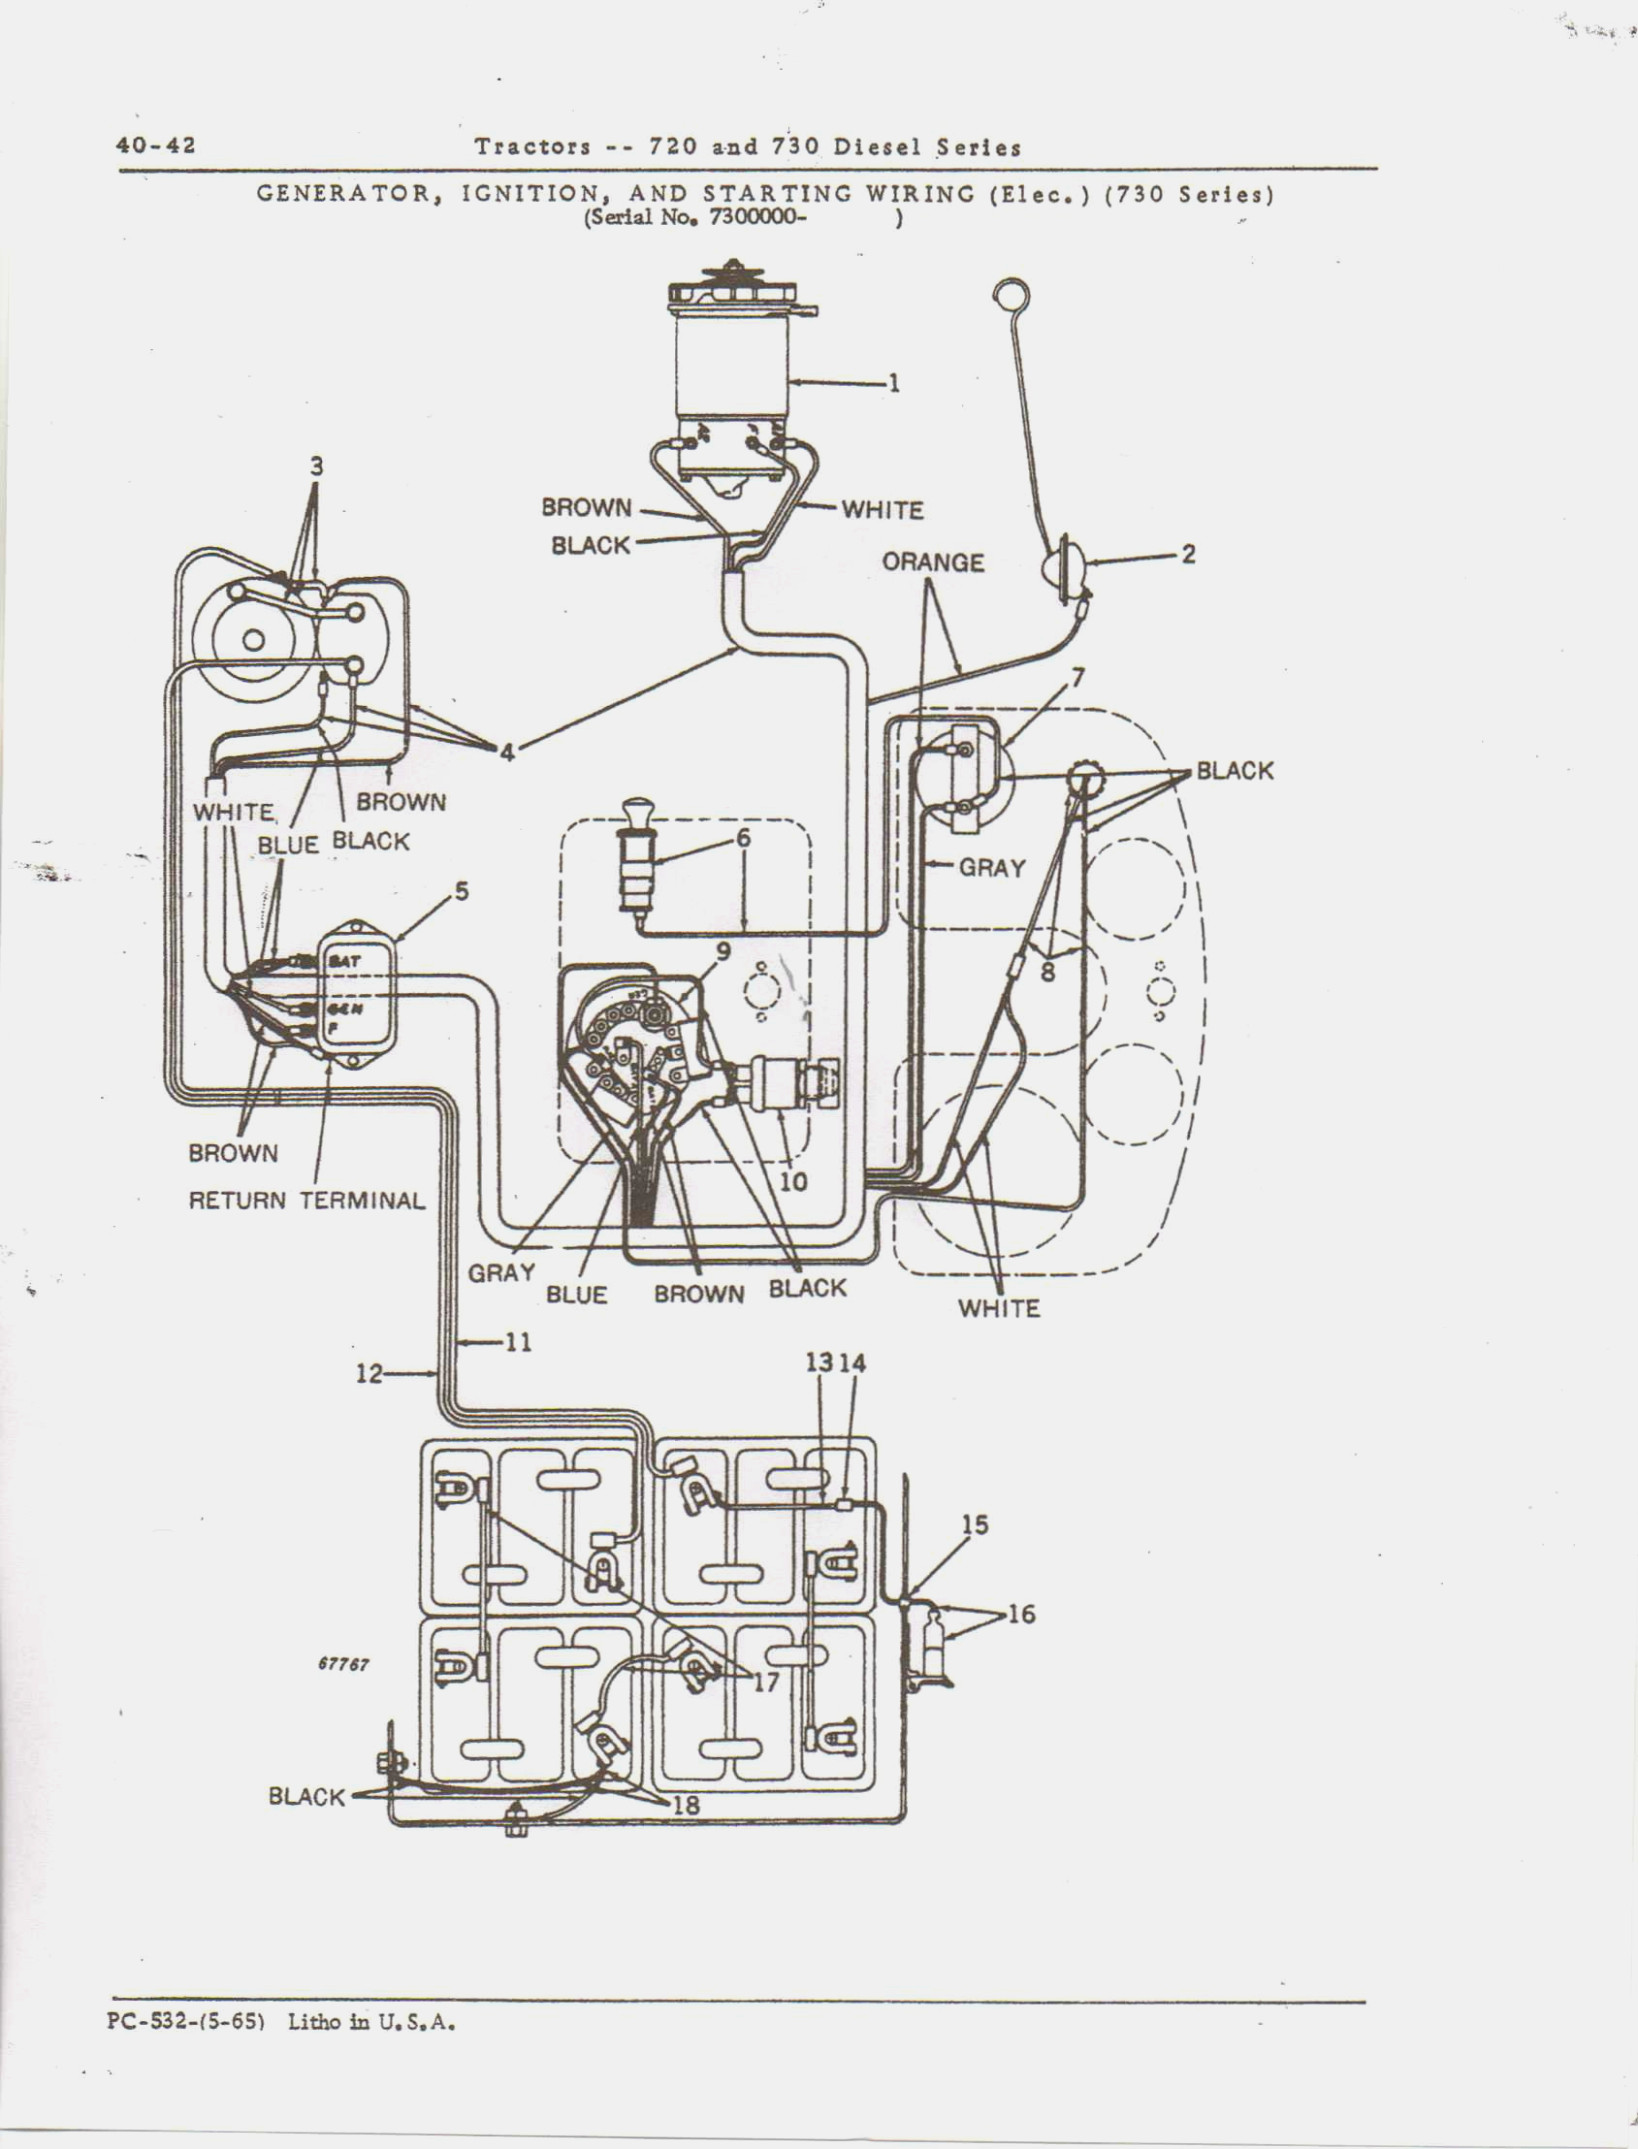 Mm John Deere 310c Backhoe Wiring Diagram John